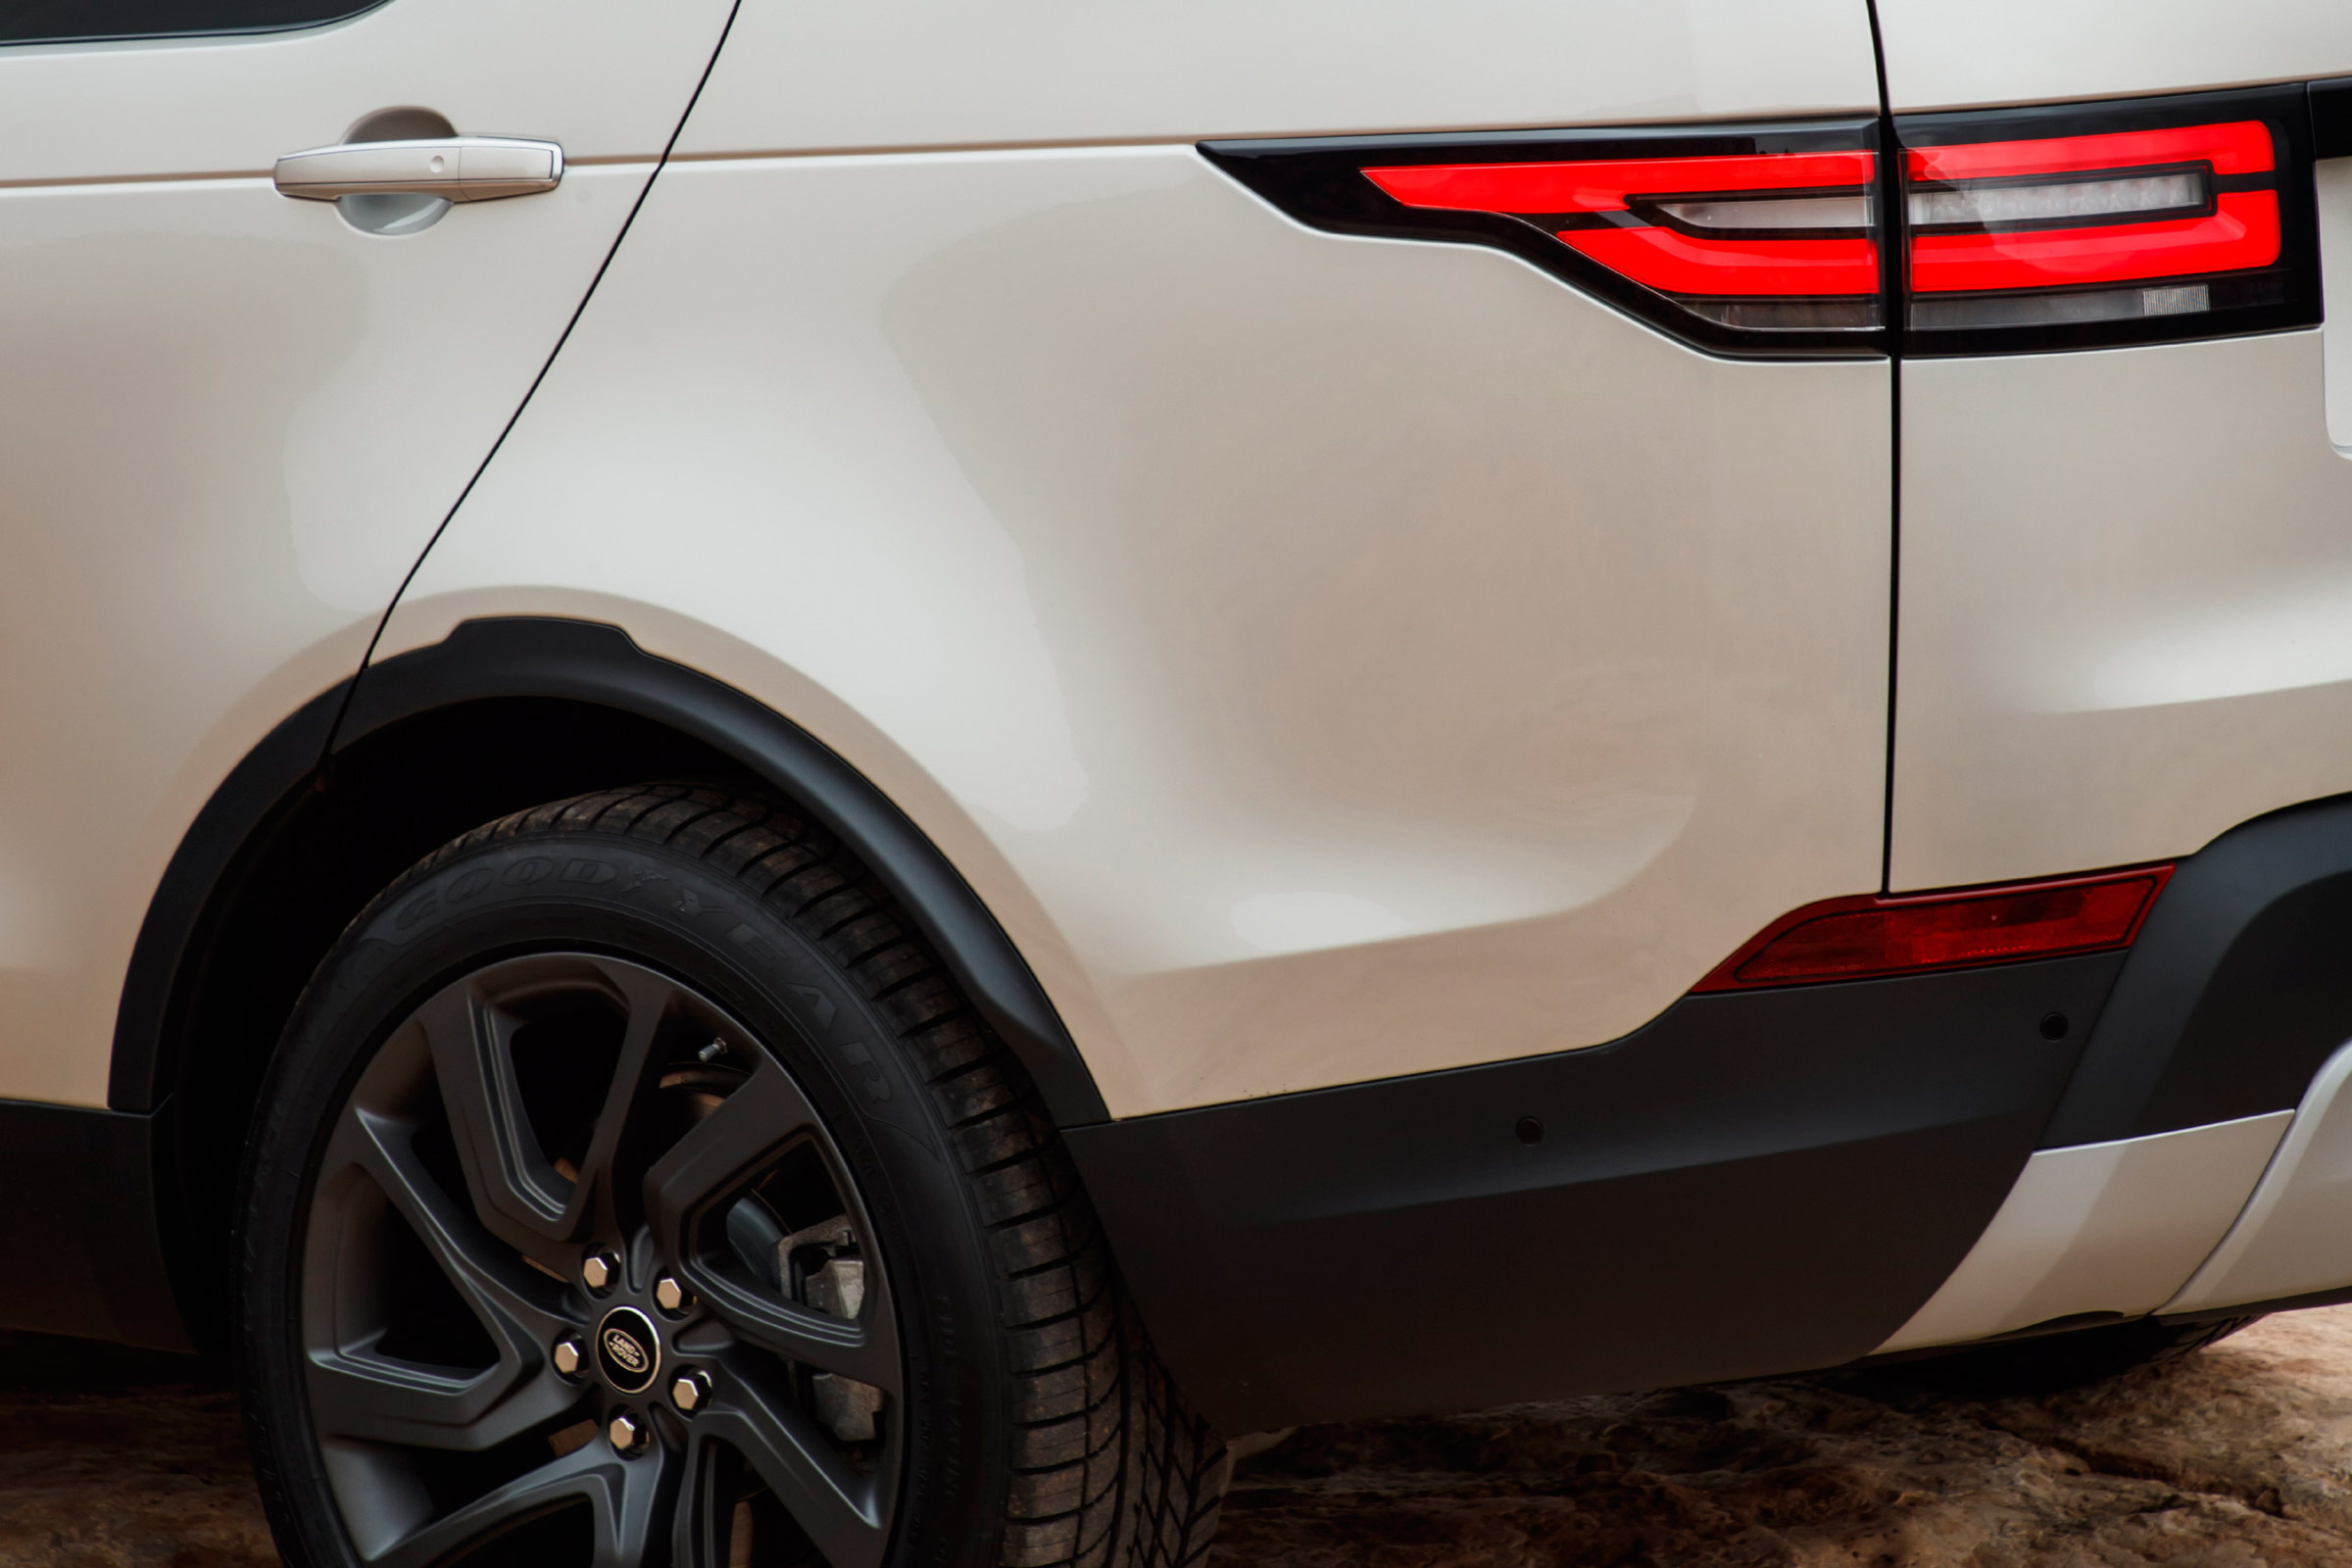 2017 Land Rover Discovery Exterior View Taillight (View 16 of 17)